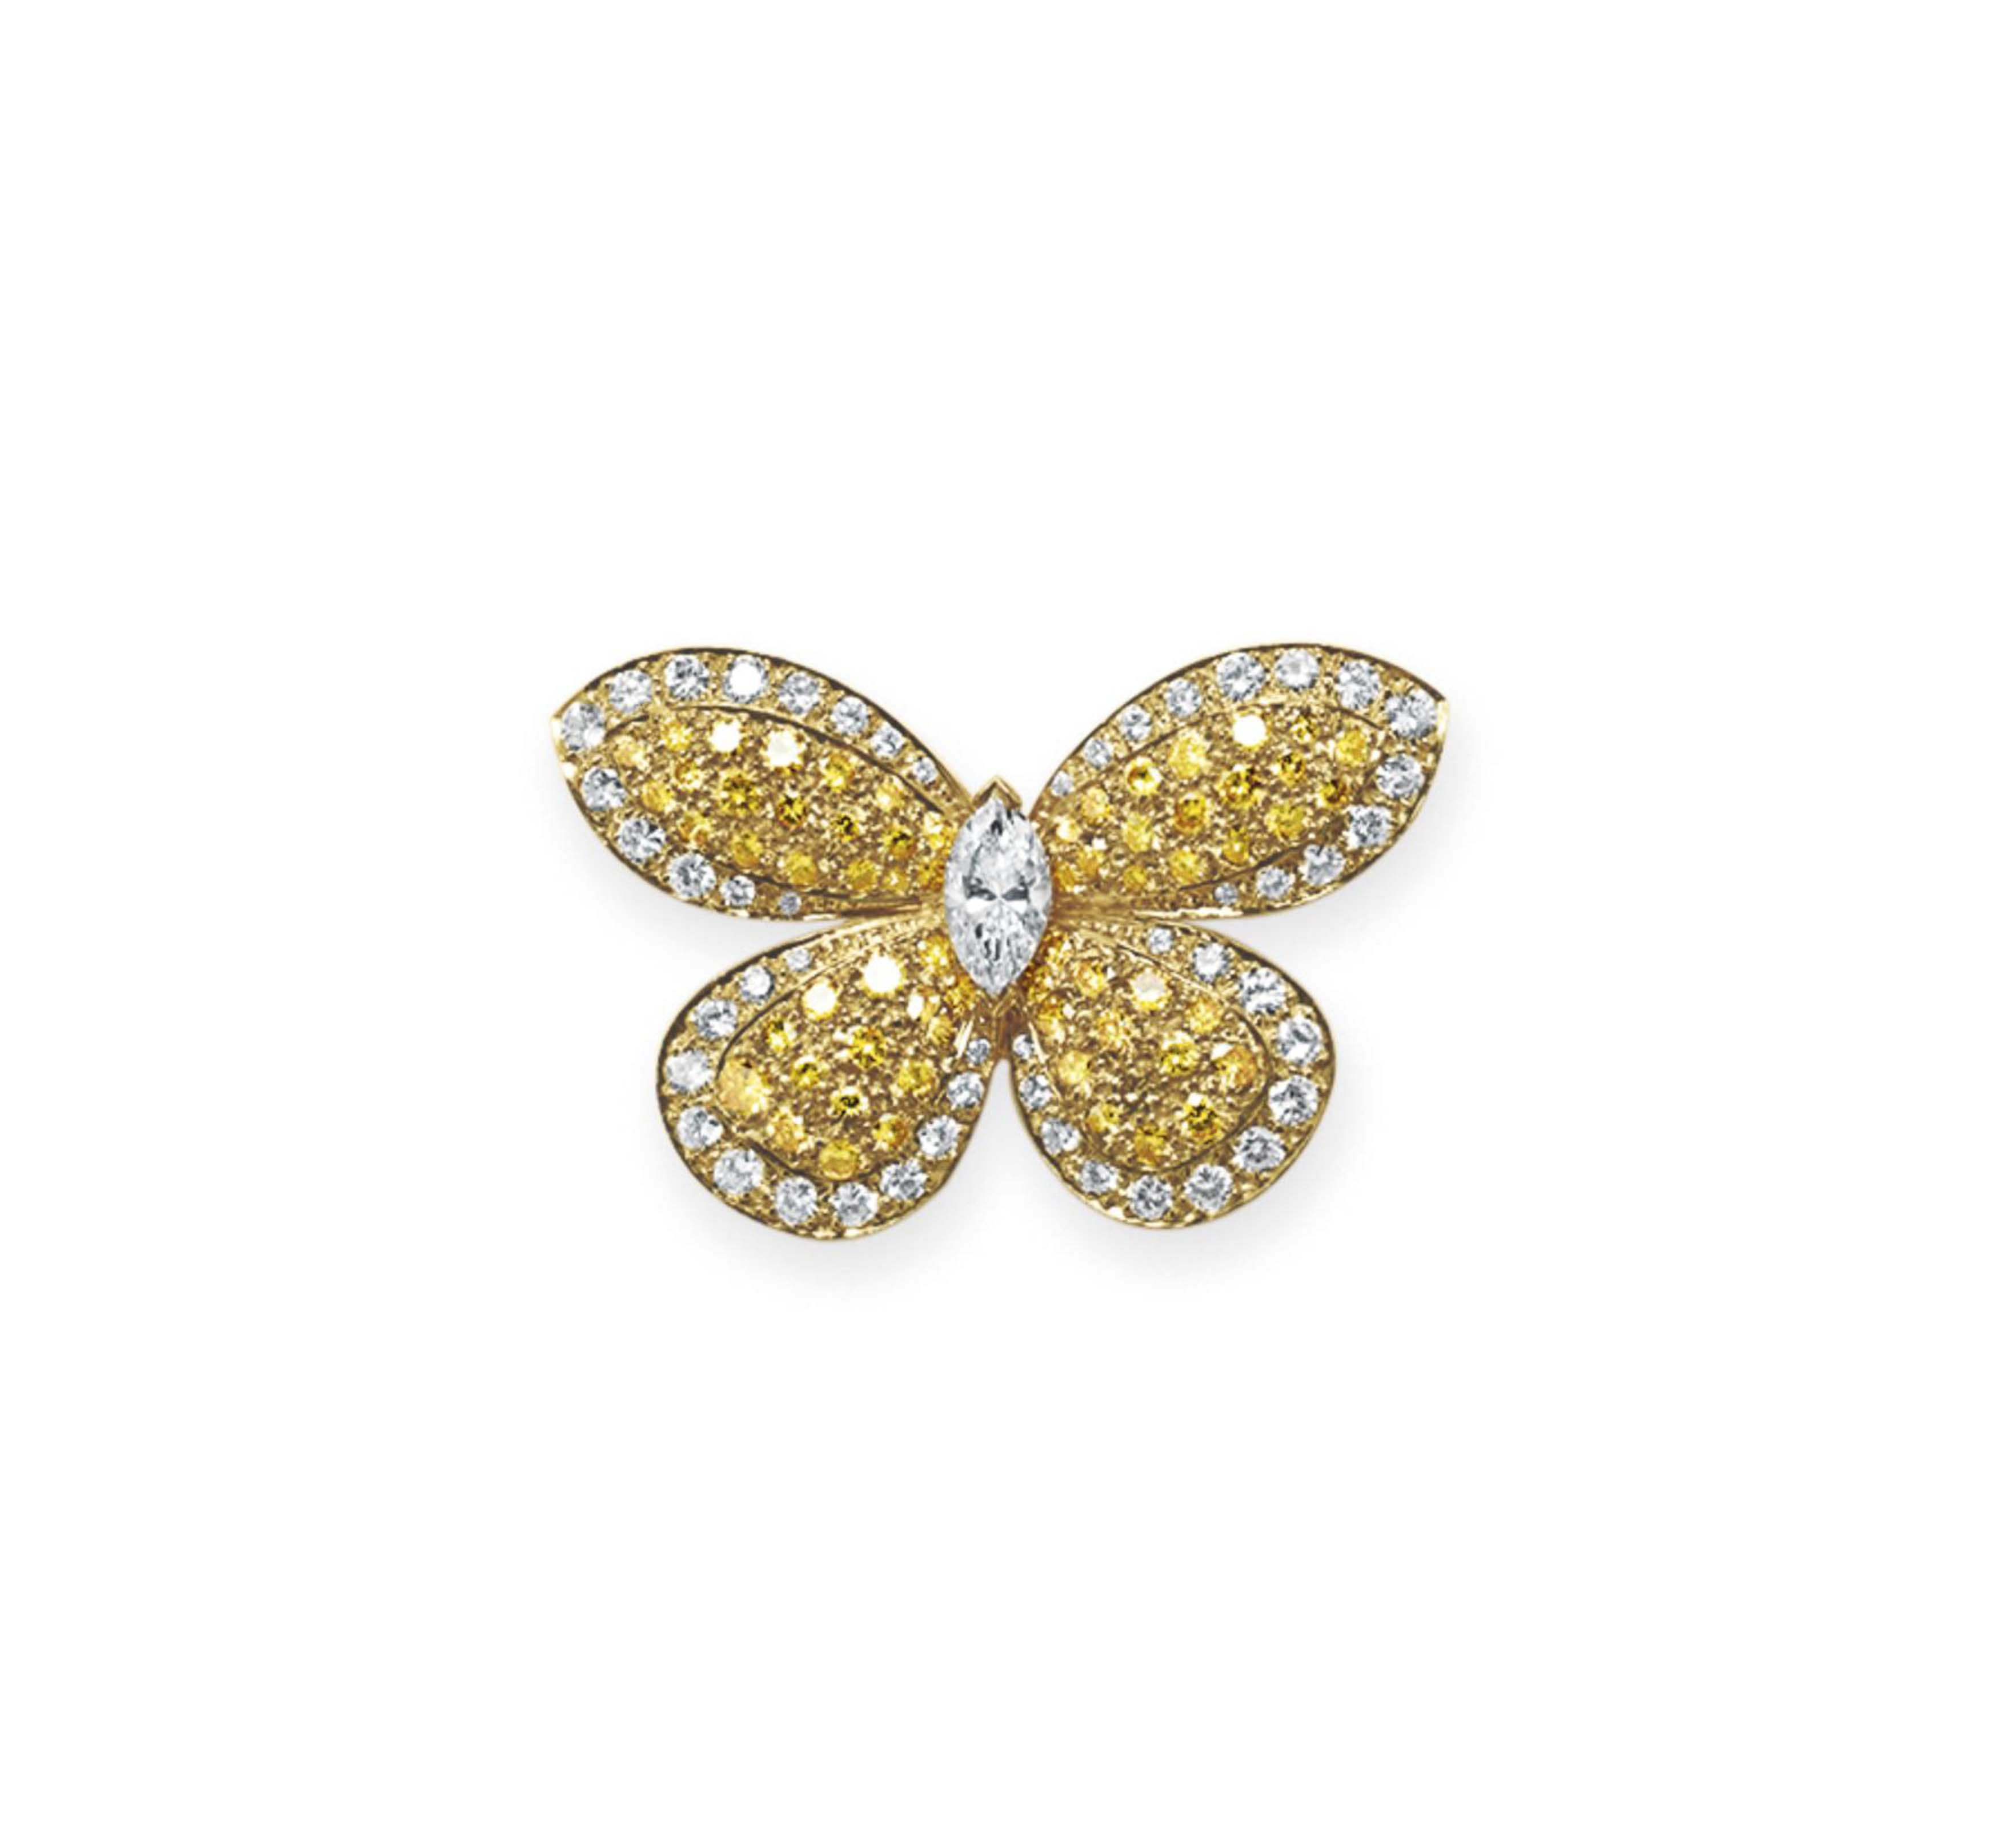 A DIAMOND AND COLORED DIAMOND BROOCH, BY VAN CLEEF ...